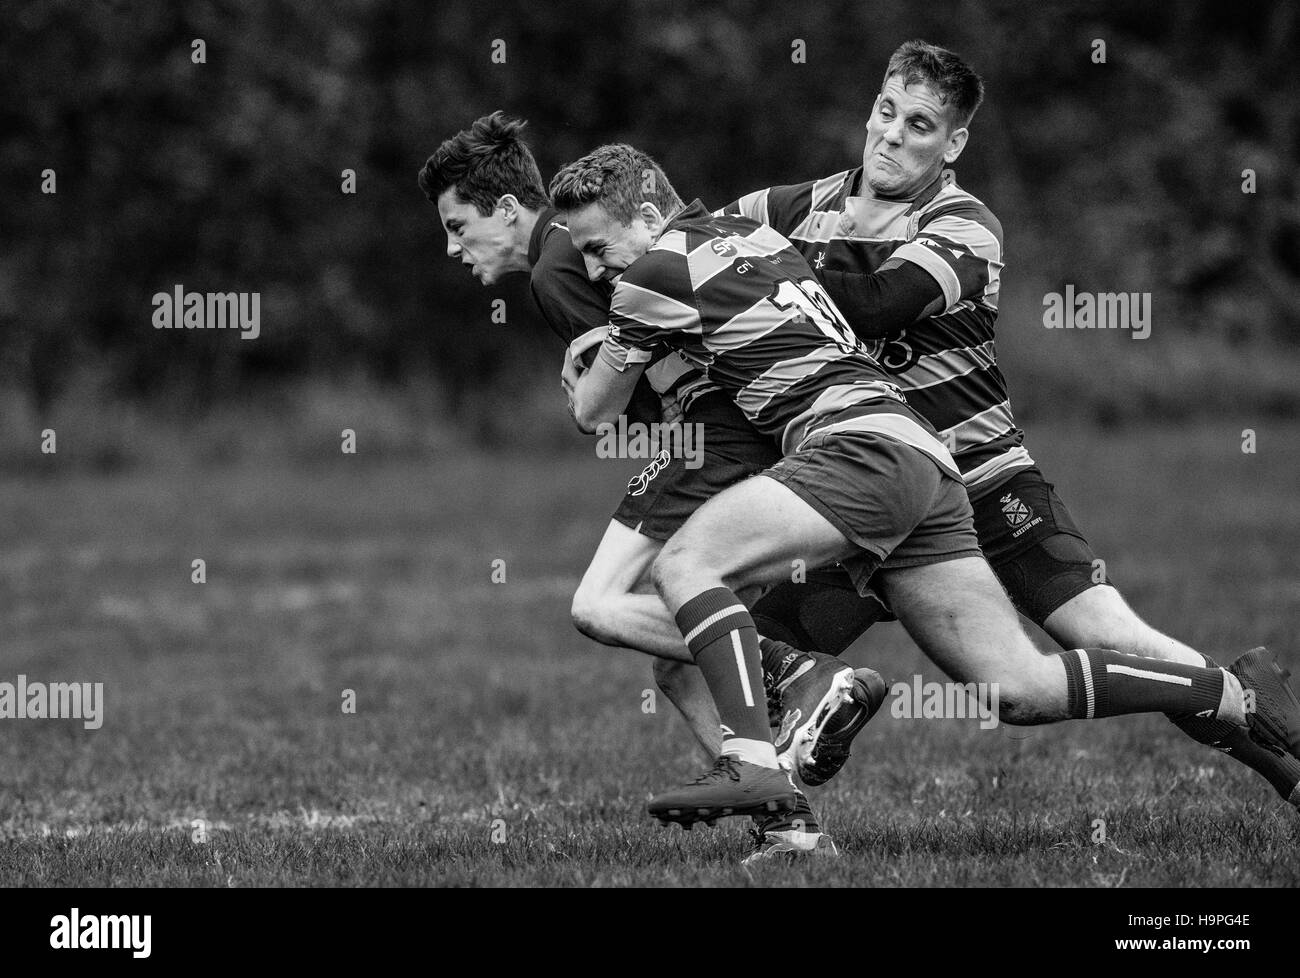 Male rugby union football player being tackled Stock Photo